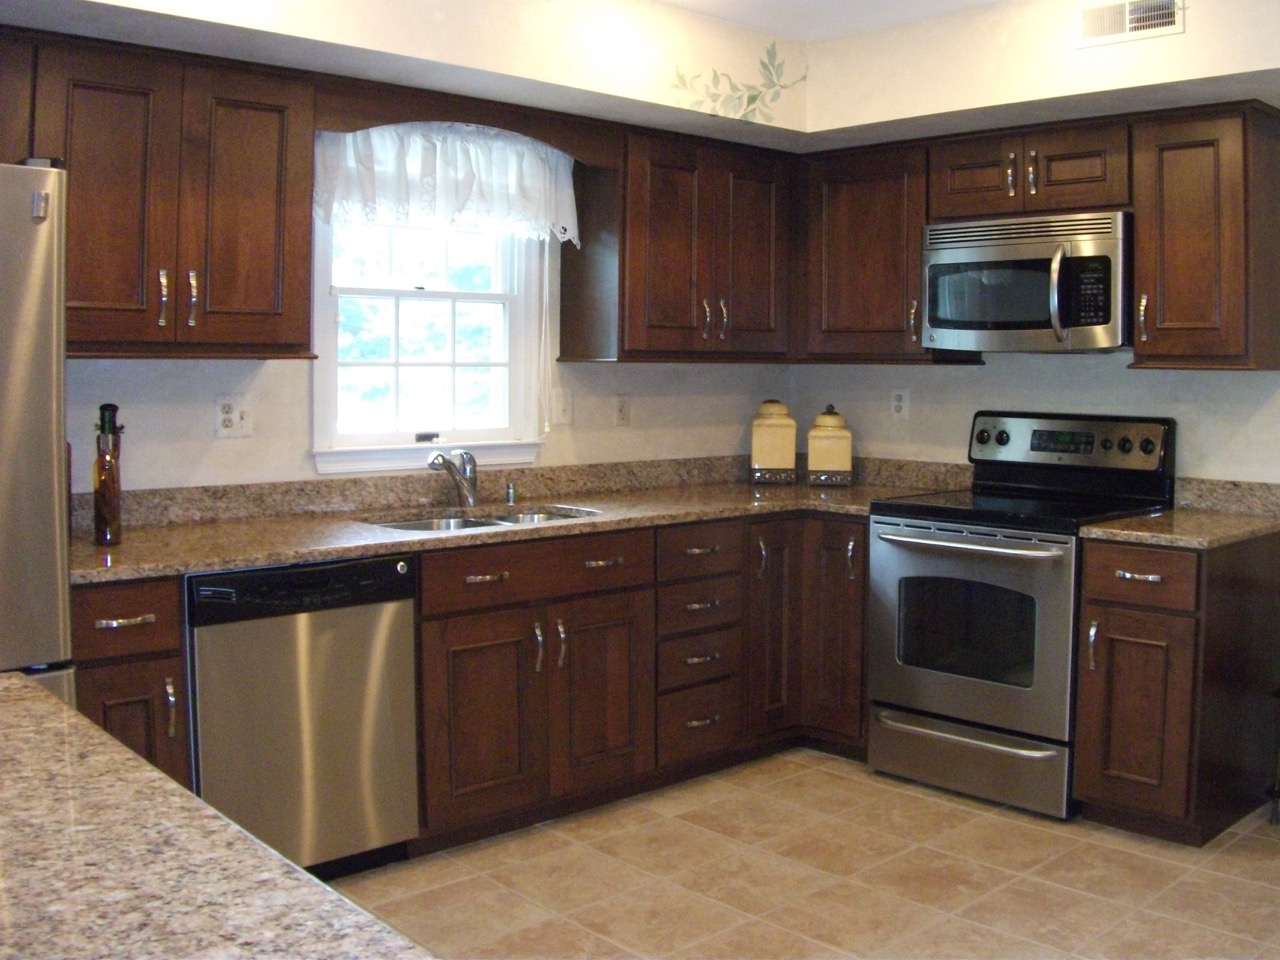 Kitchen makeover with cabinet refacing organized by design How to do a home makeover